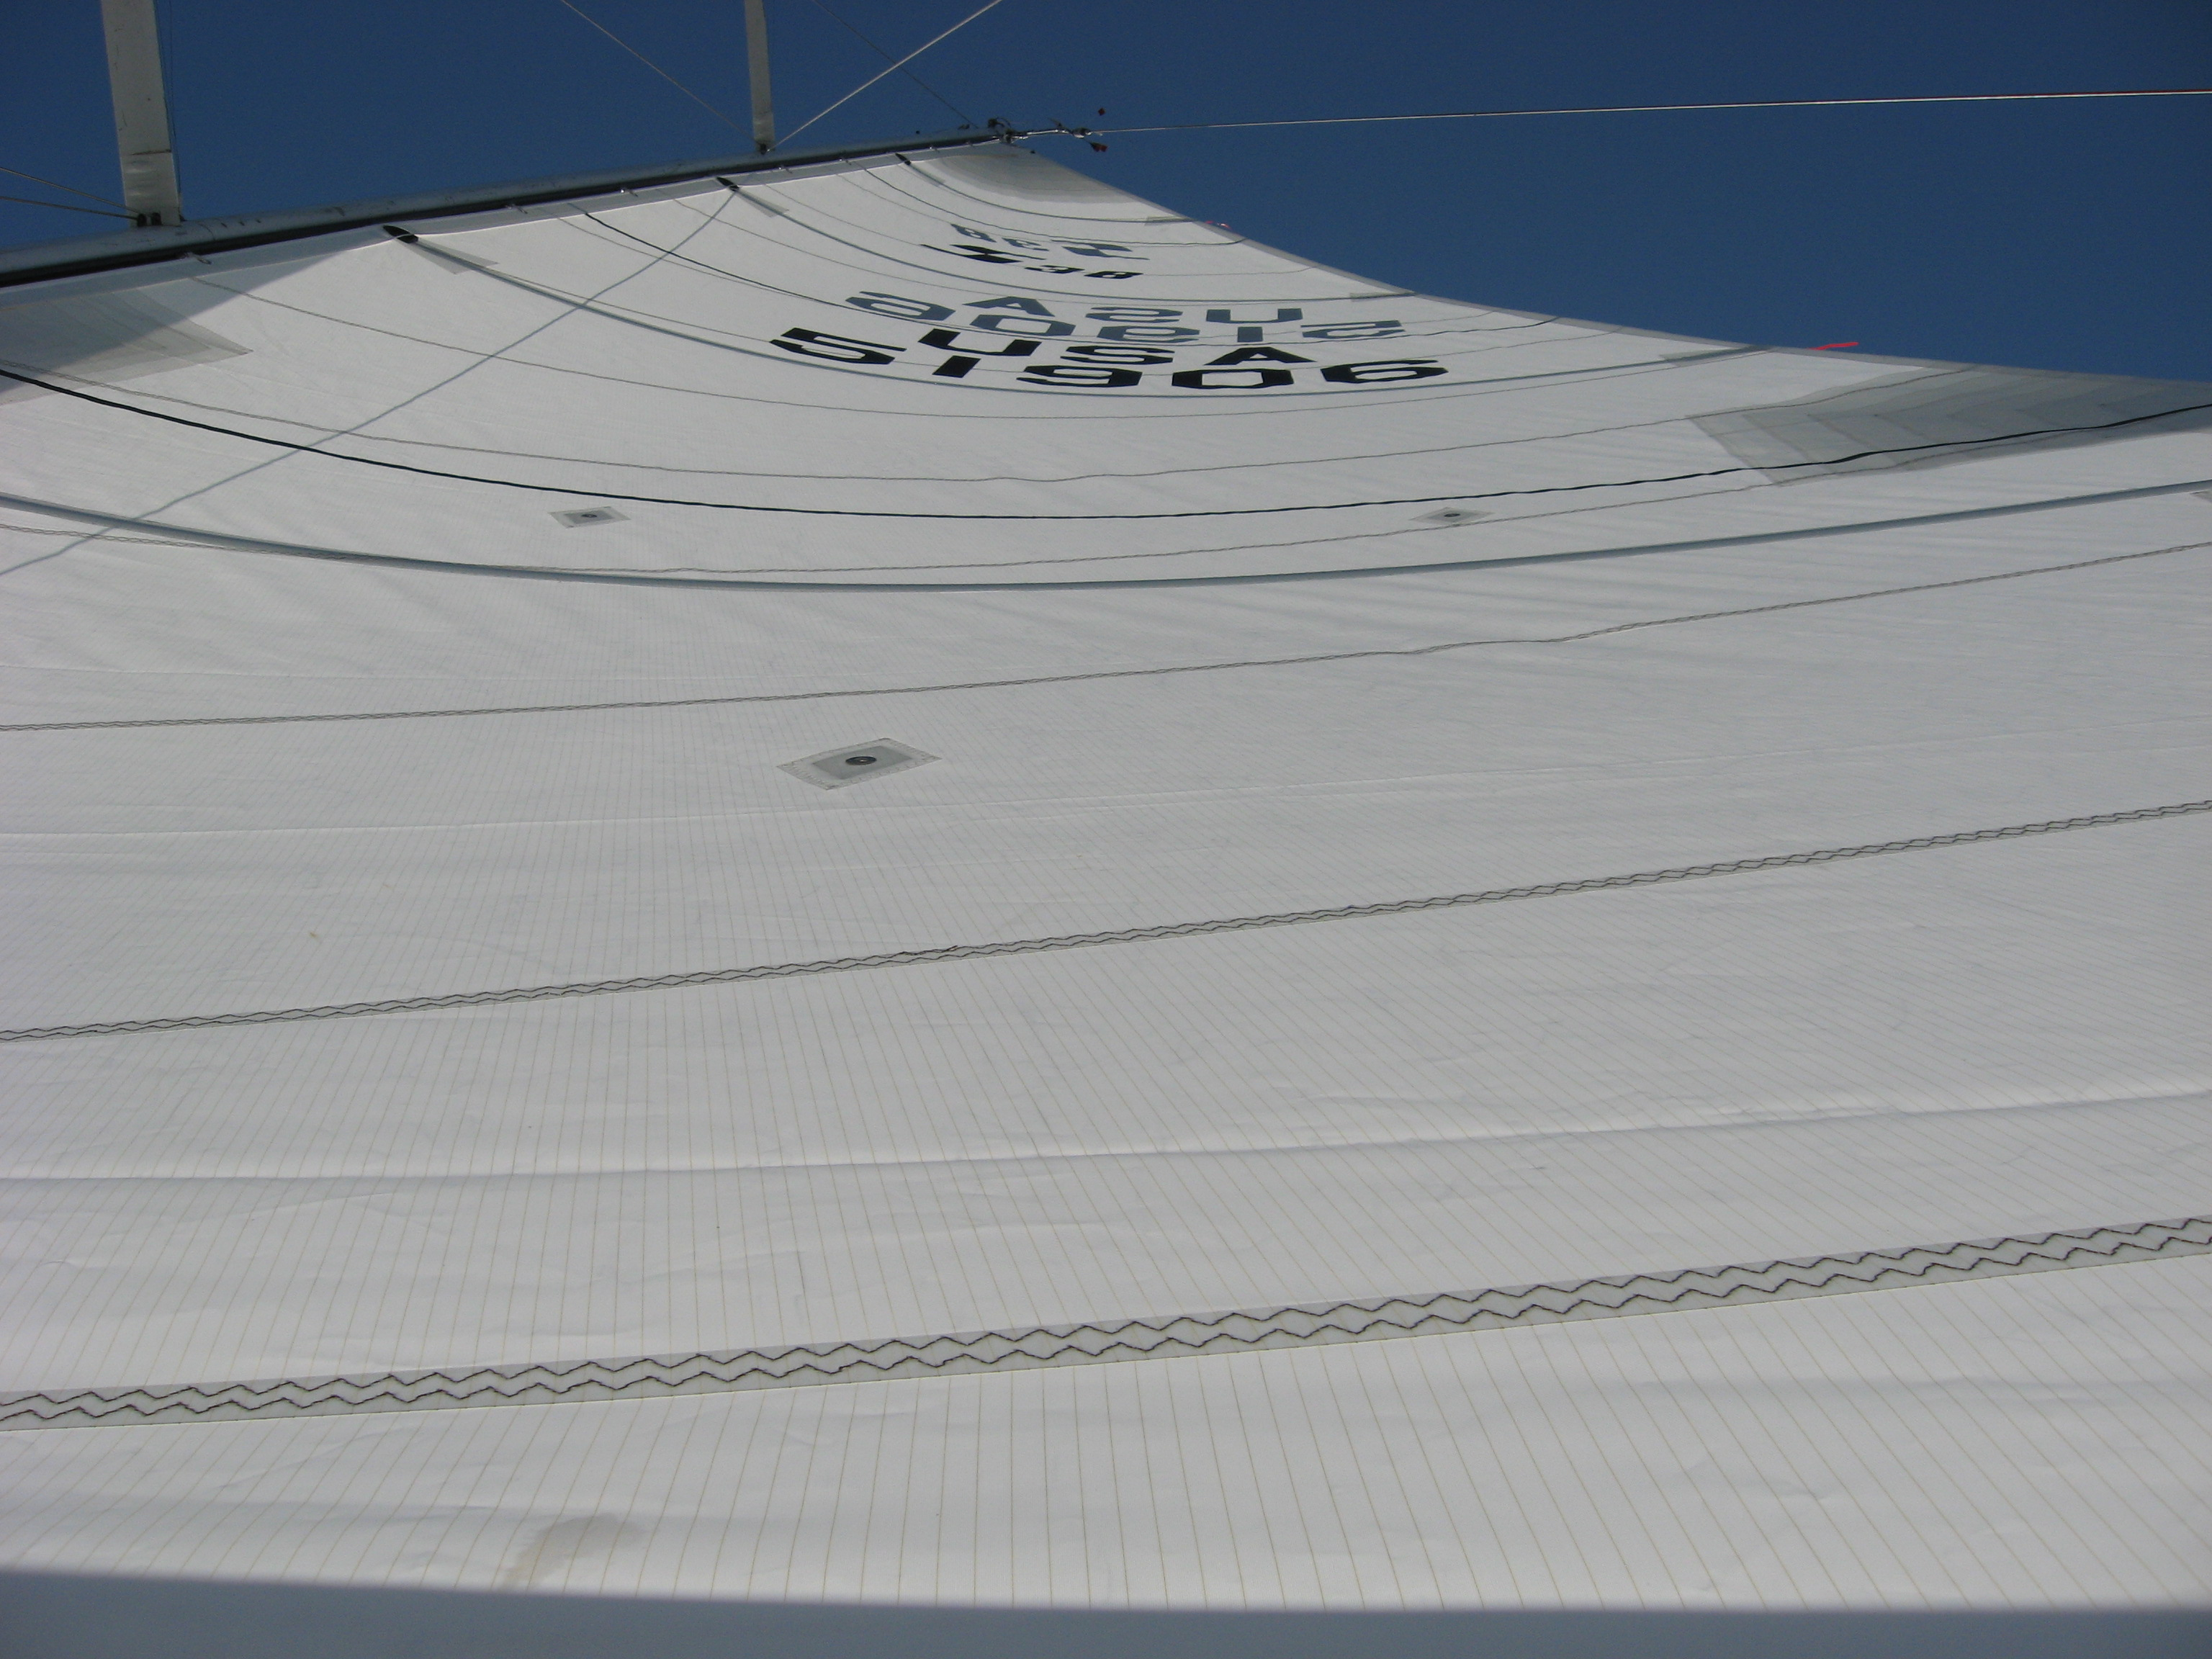 Most sail boats are constrained either by the backstay or a rating rule or often both